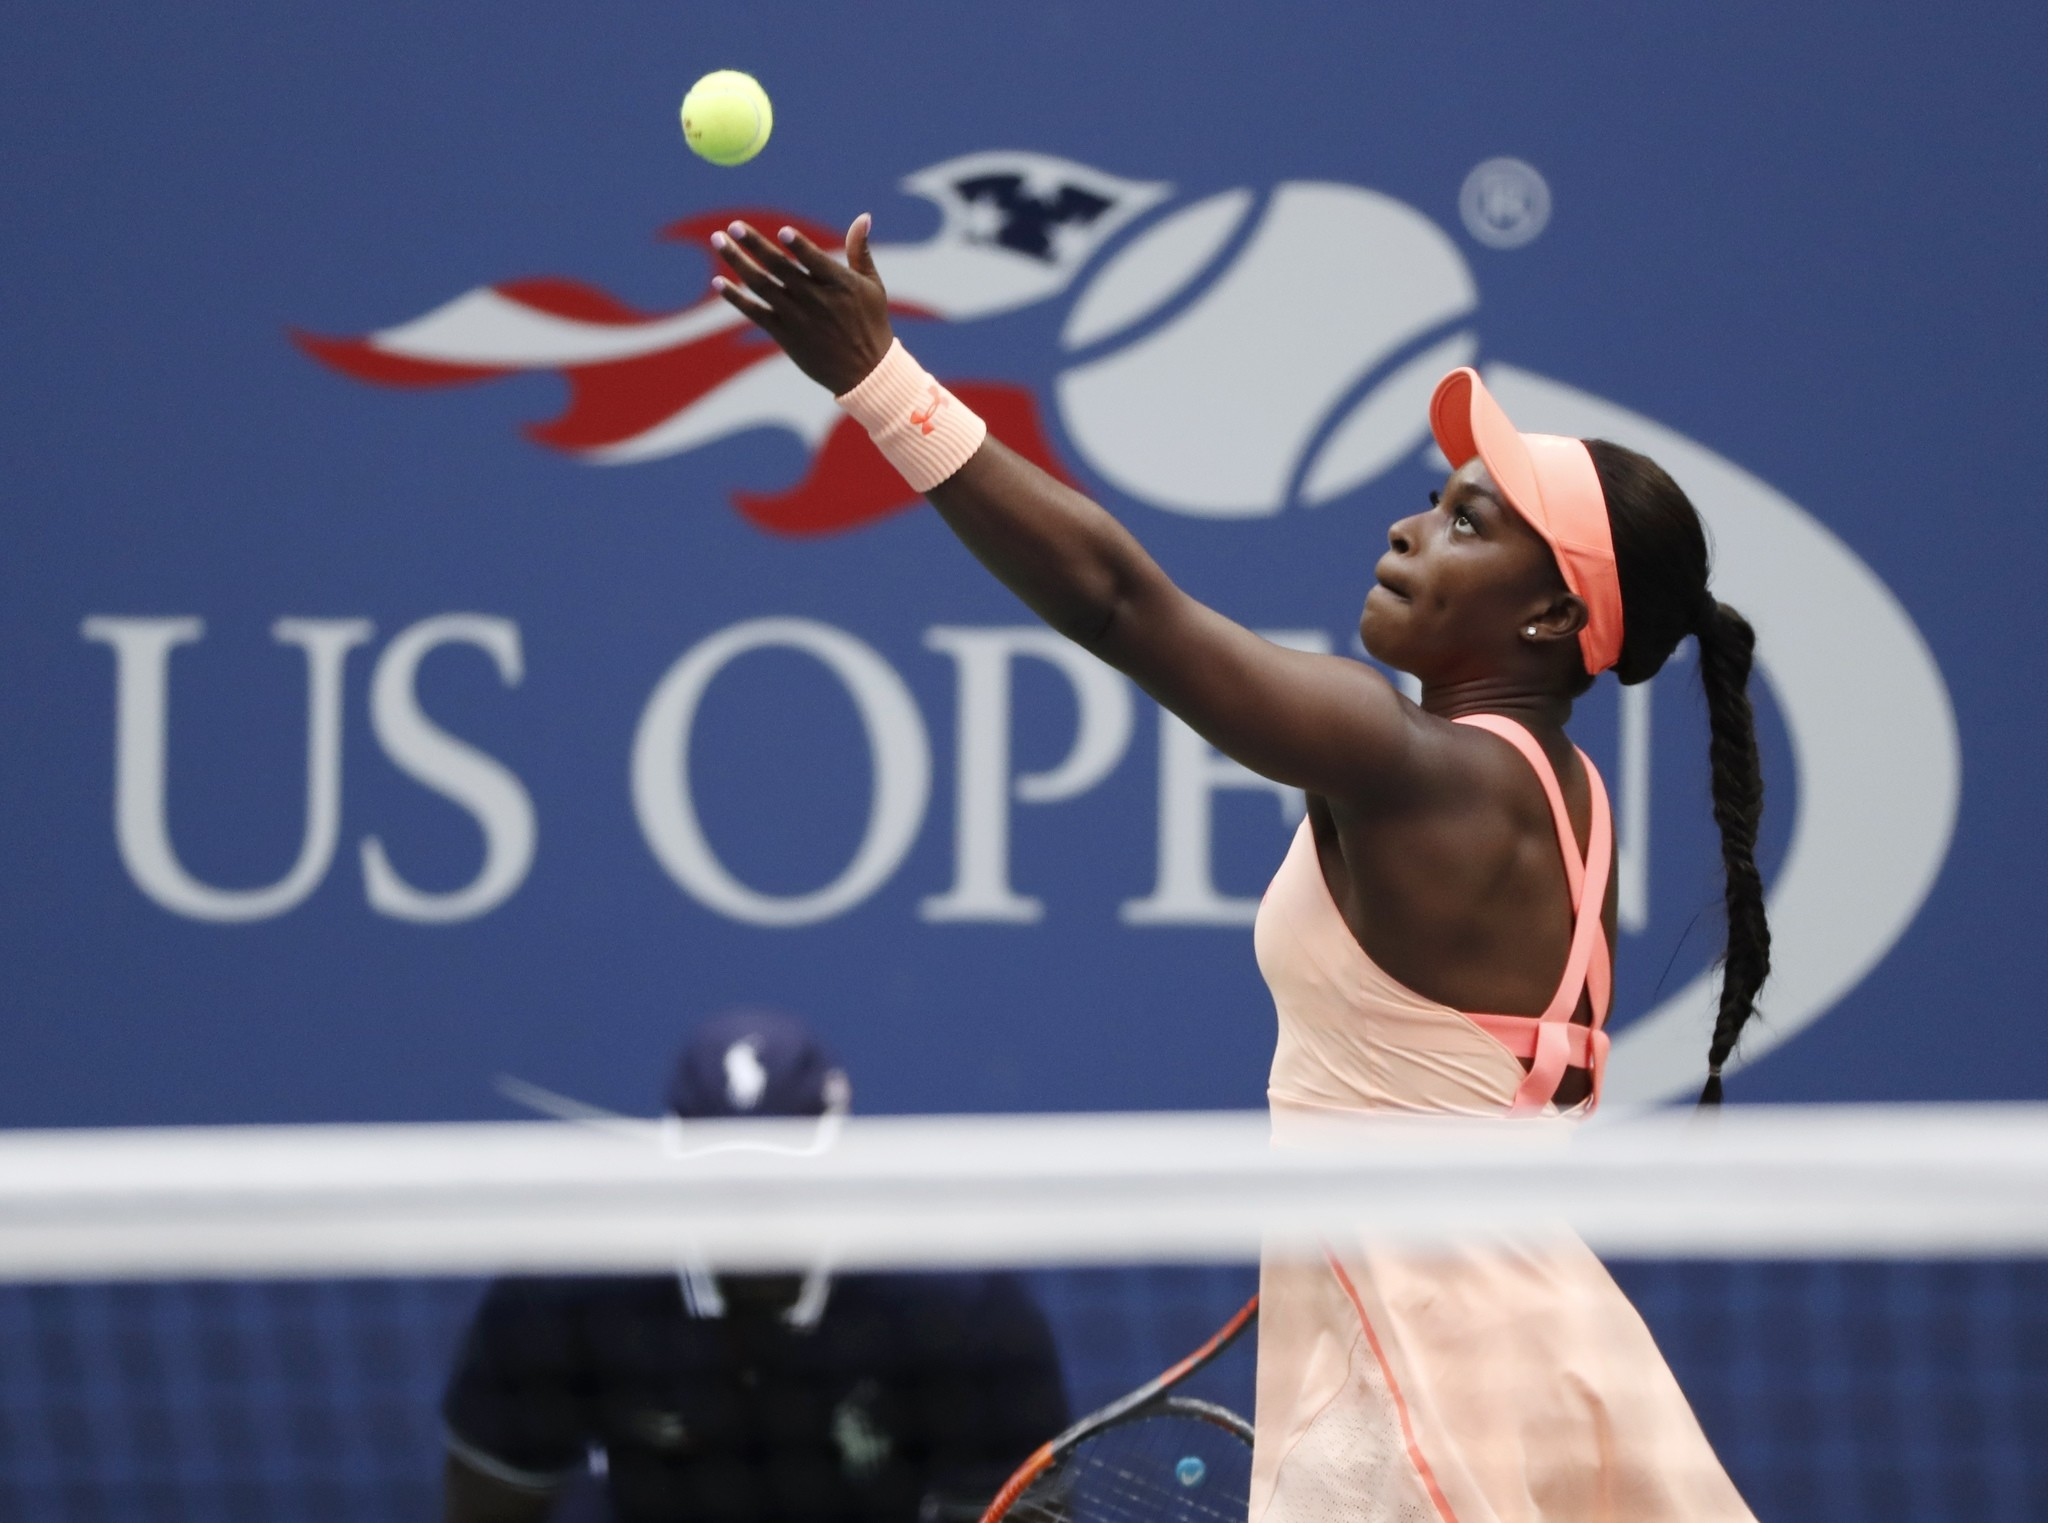 Sloane Stephens, of the U.S., serves to Madison Keys, of the U.S., during the championship match of the U.S. Open tennis tournament, Sept. 9, 2017, in New York. (AP Photo)